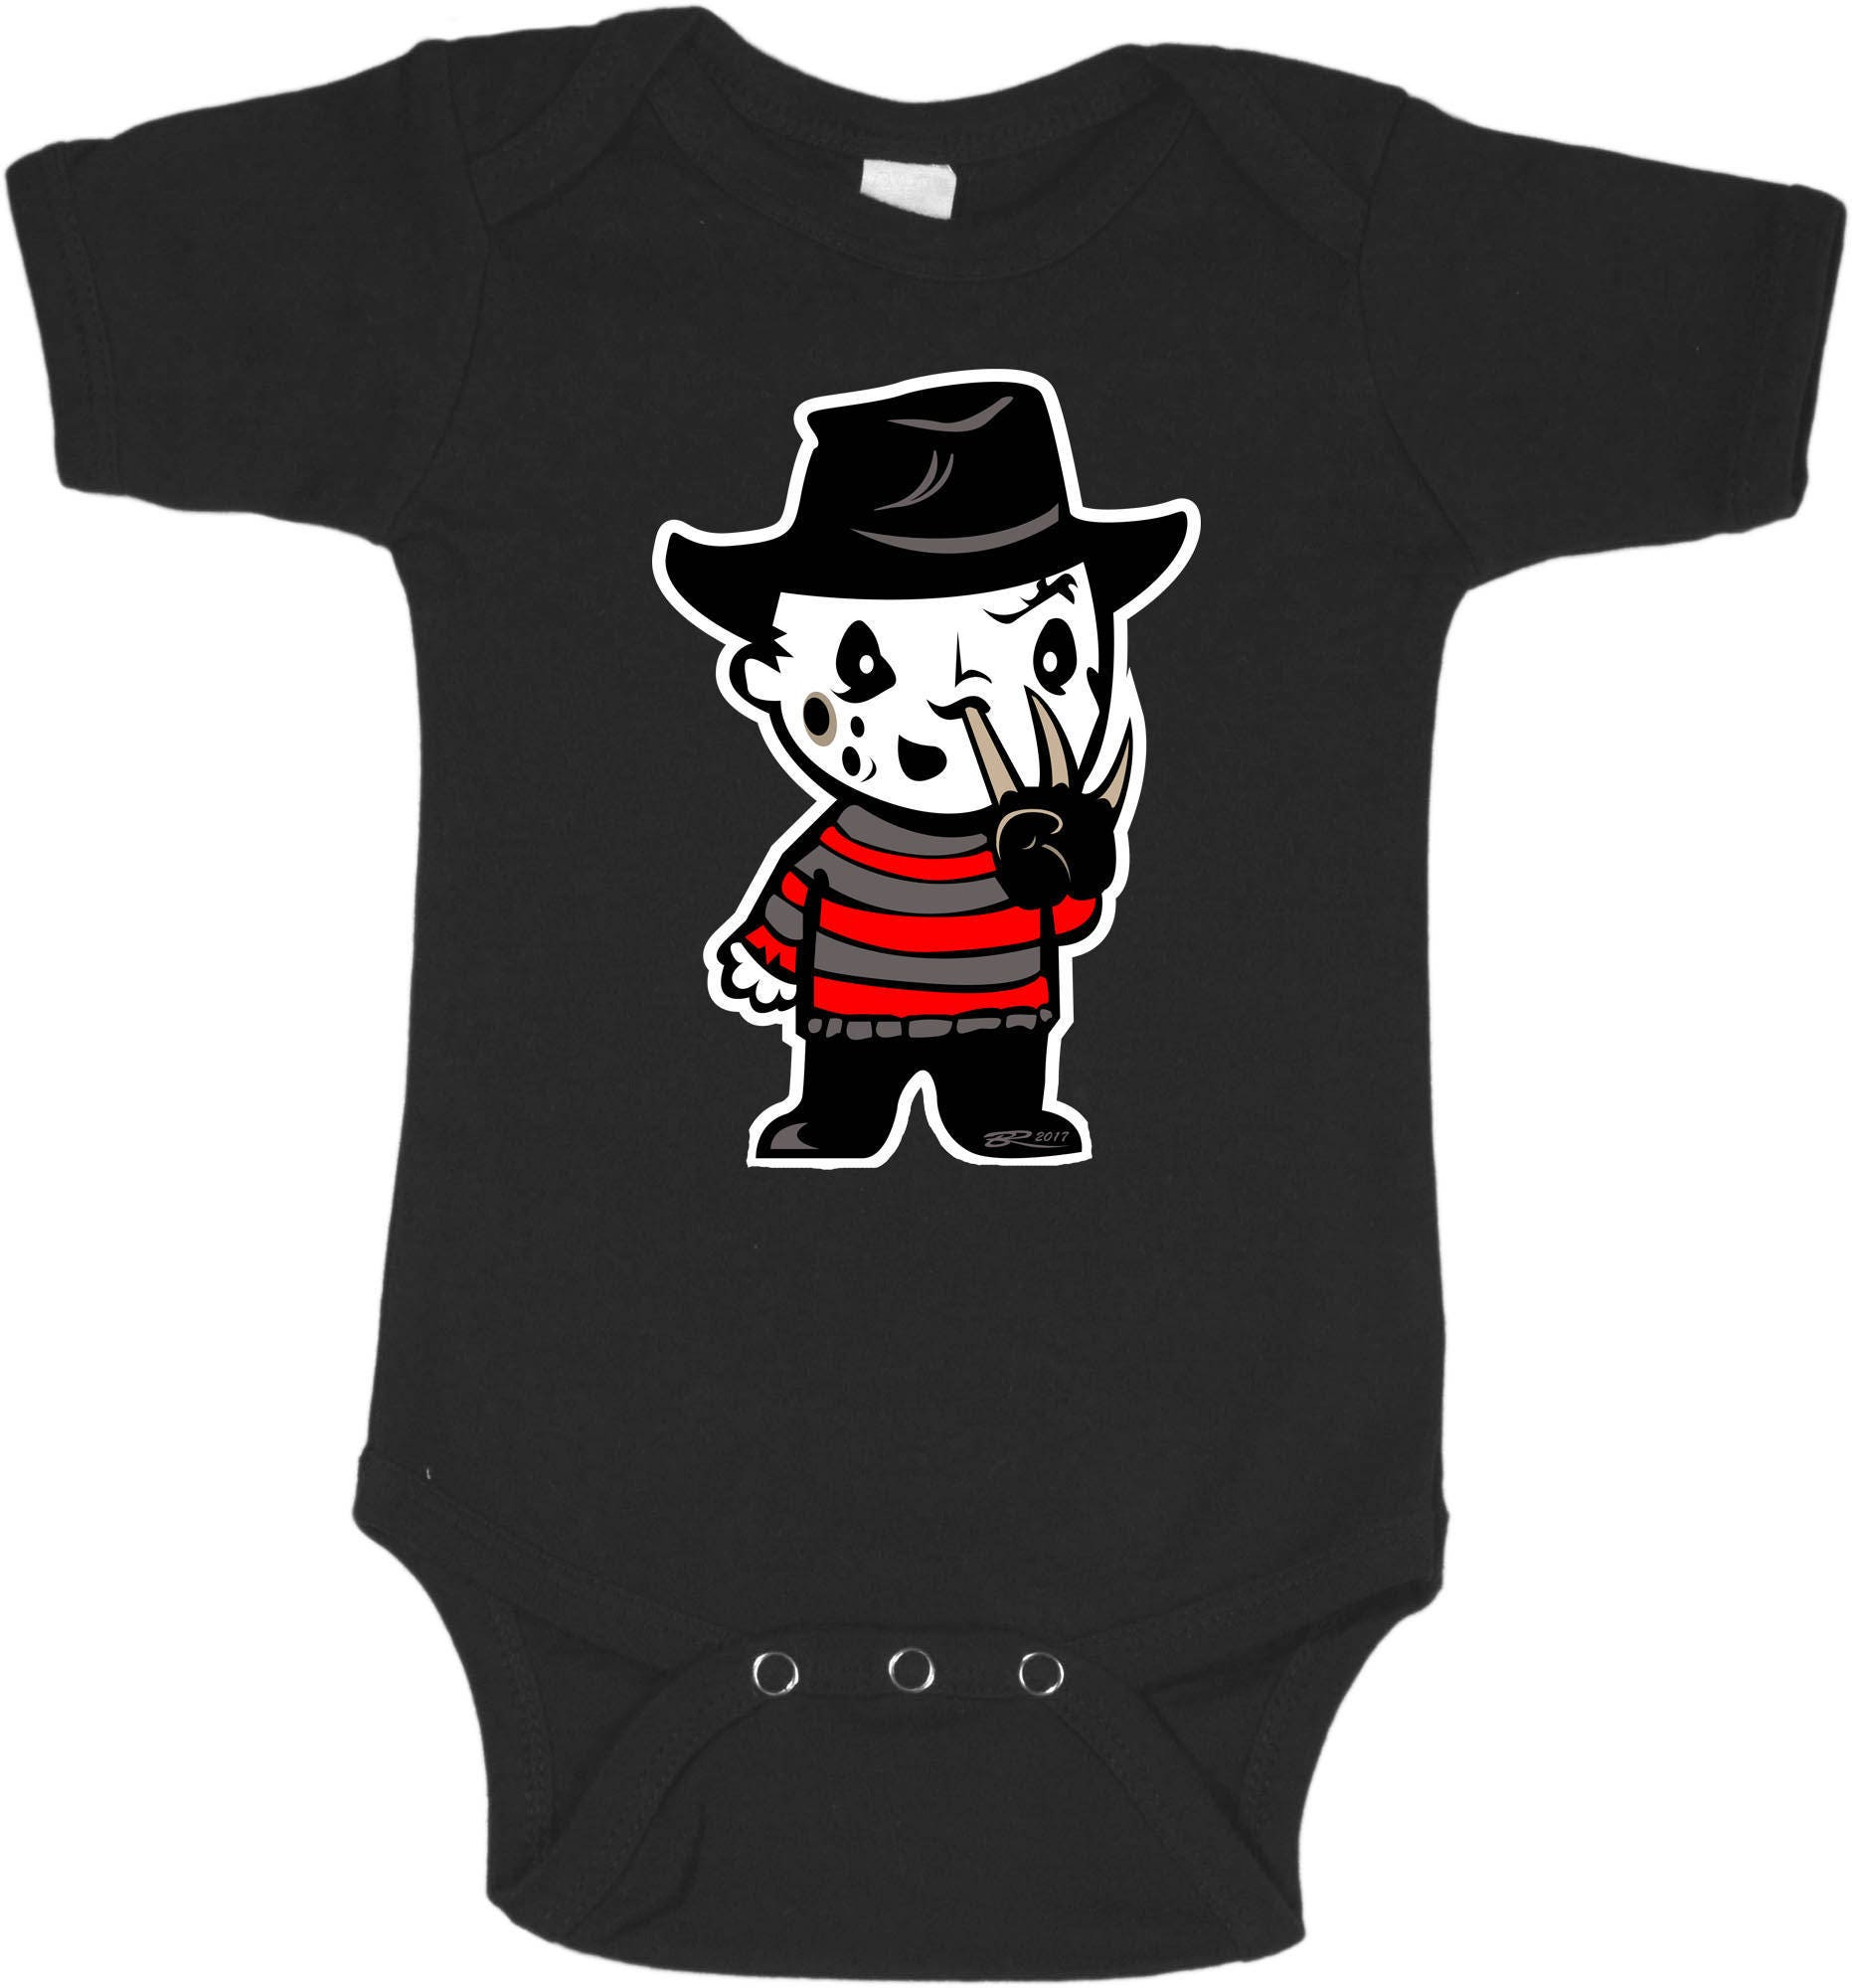 next day shipping - halloween baby clothing - freddy krueger